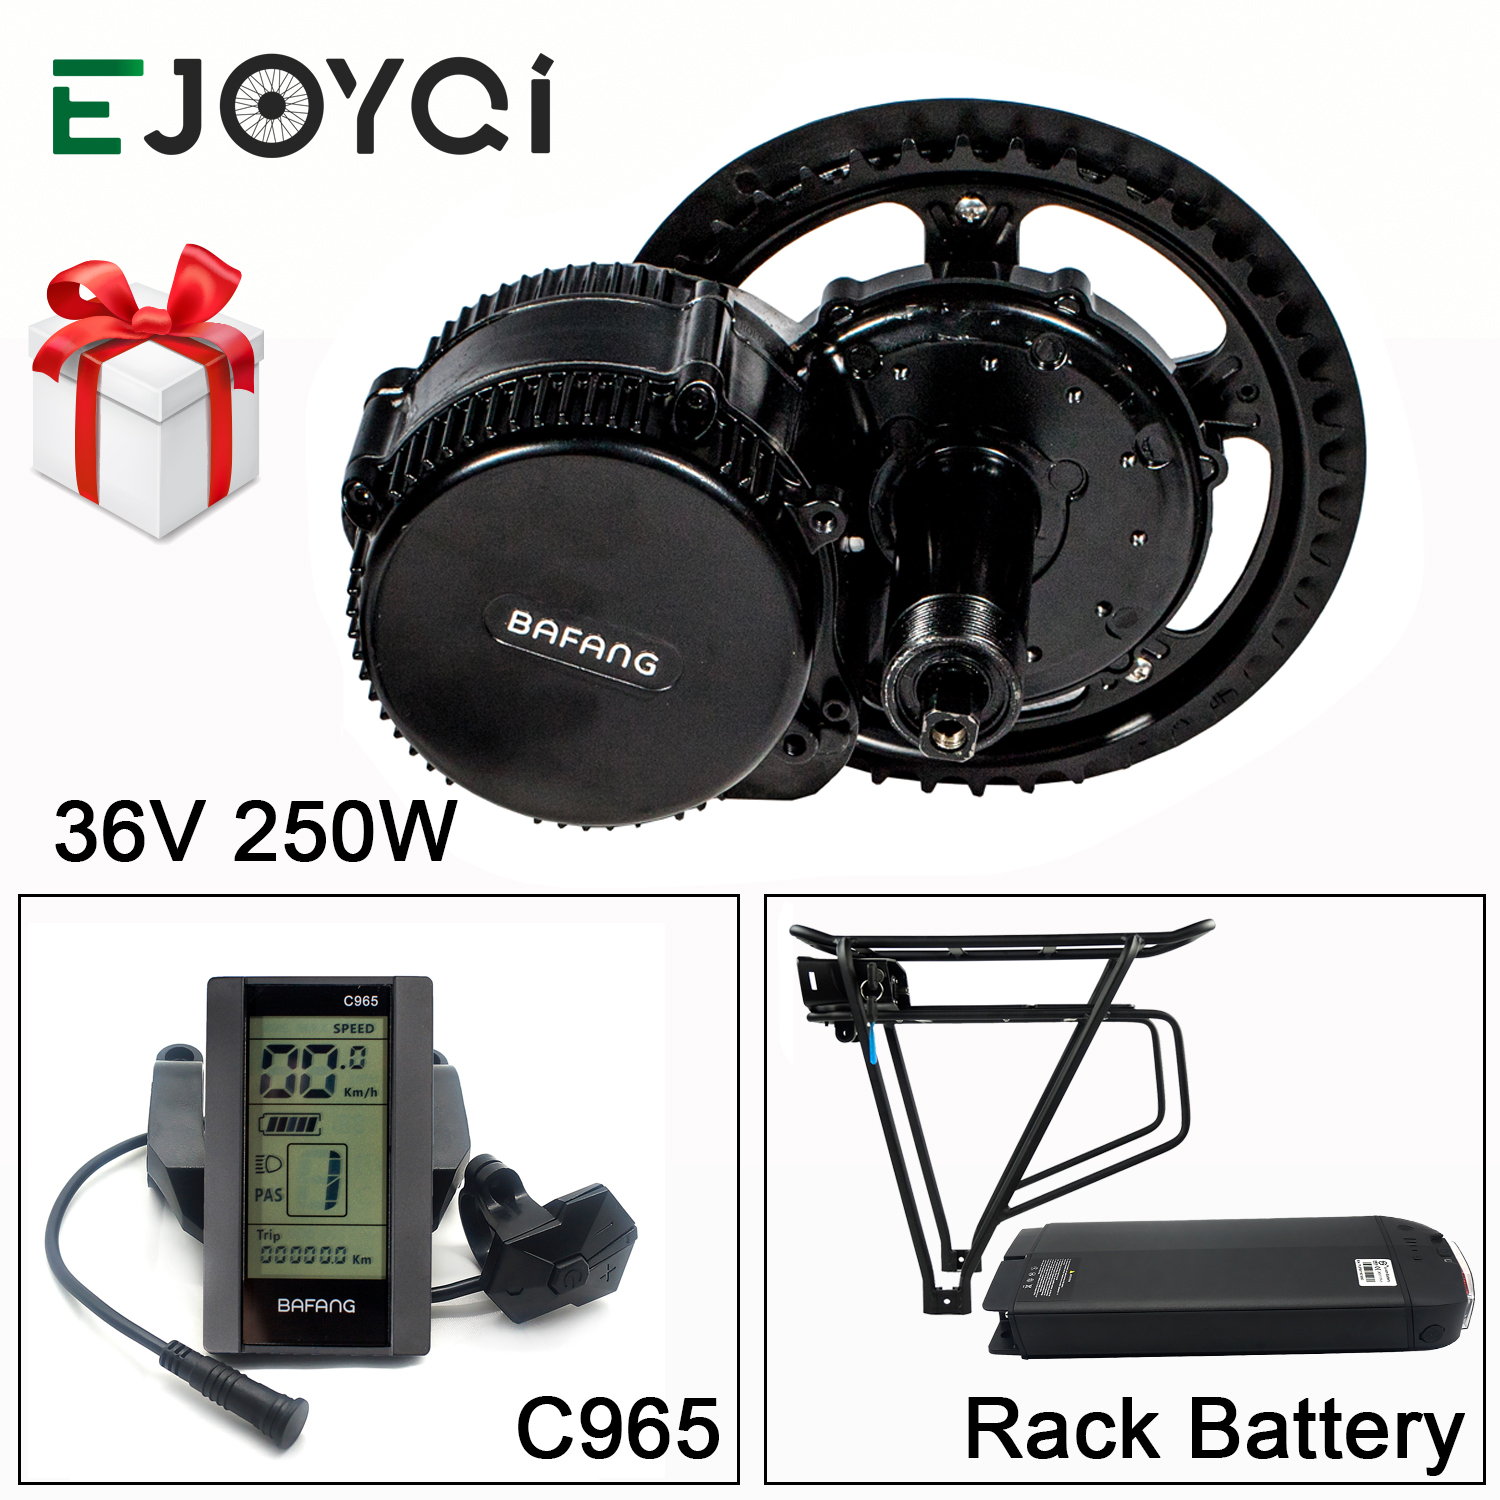 Bafang 8FUN 36V 250W BBS01B MMG340 16Ah Rack Battery 850C SW102 Mid Drive Motor Ebike Conversion Kit with Light image